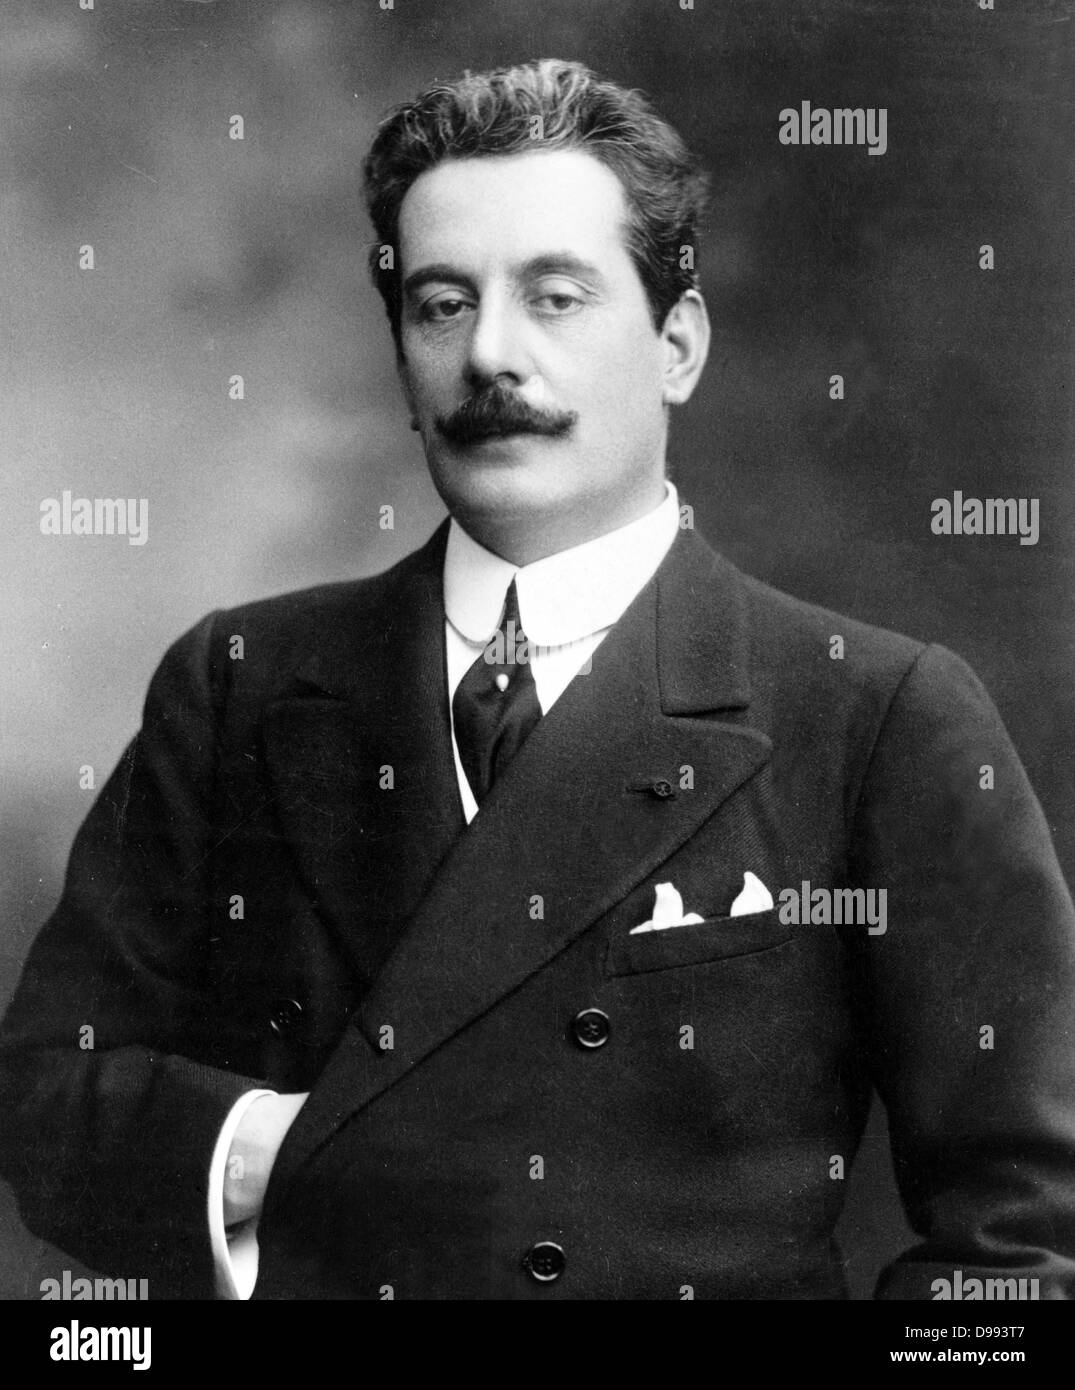 Giacomo Puccini (1858 –1924) Italian composer of operas, including La bohème, Tosca, Madama Butterfly and Turandot. - Stock Image